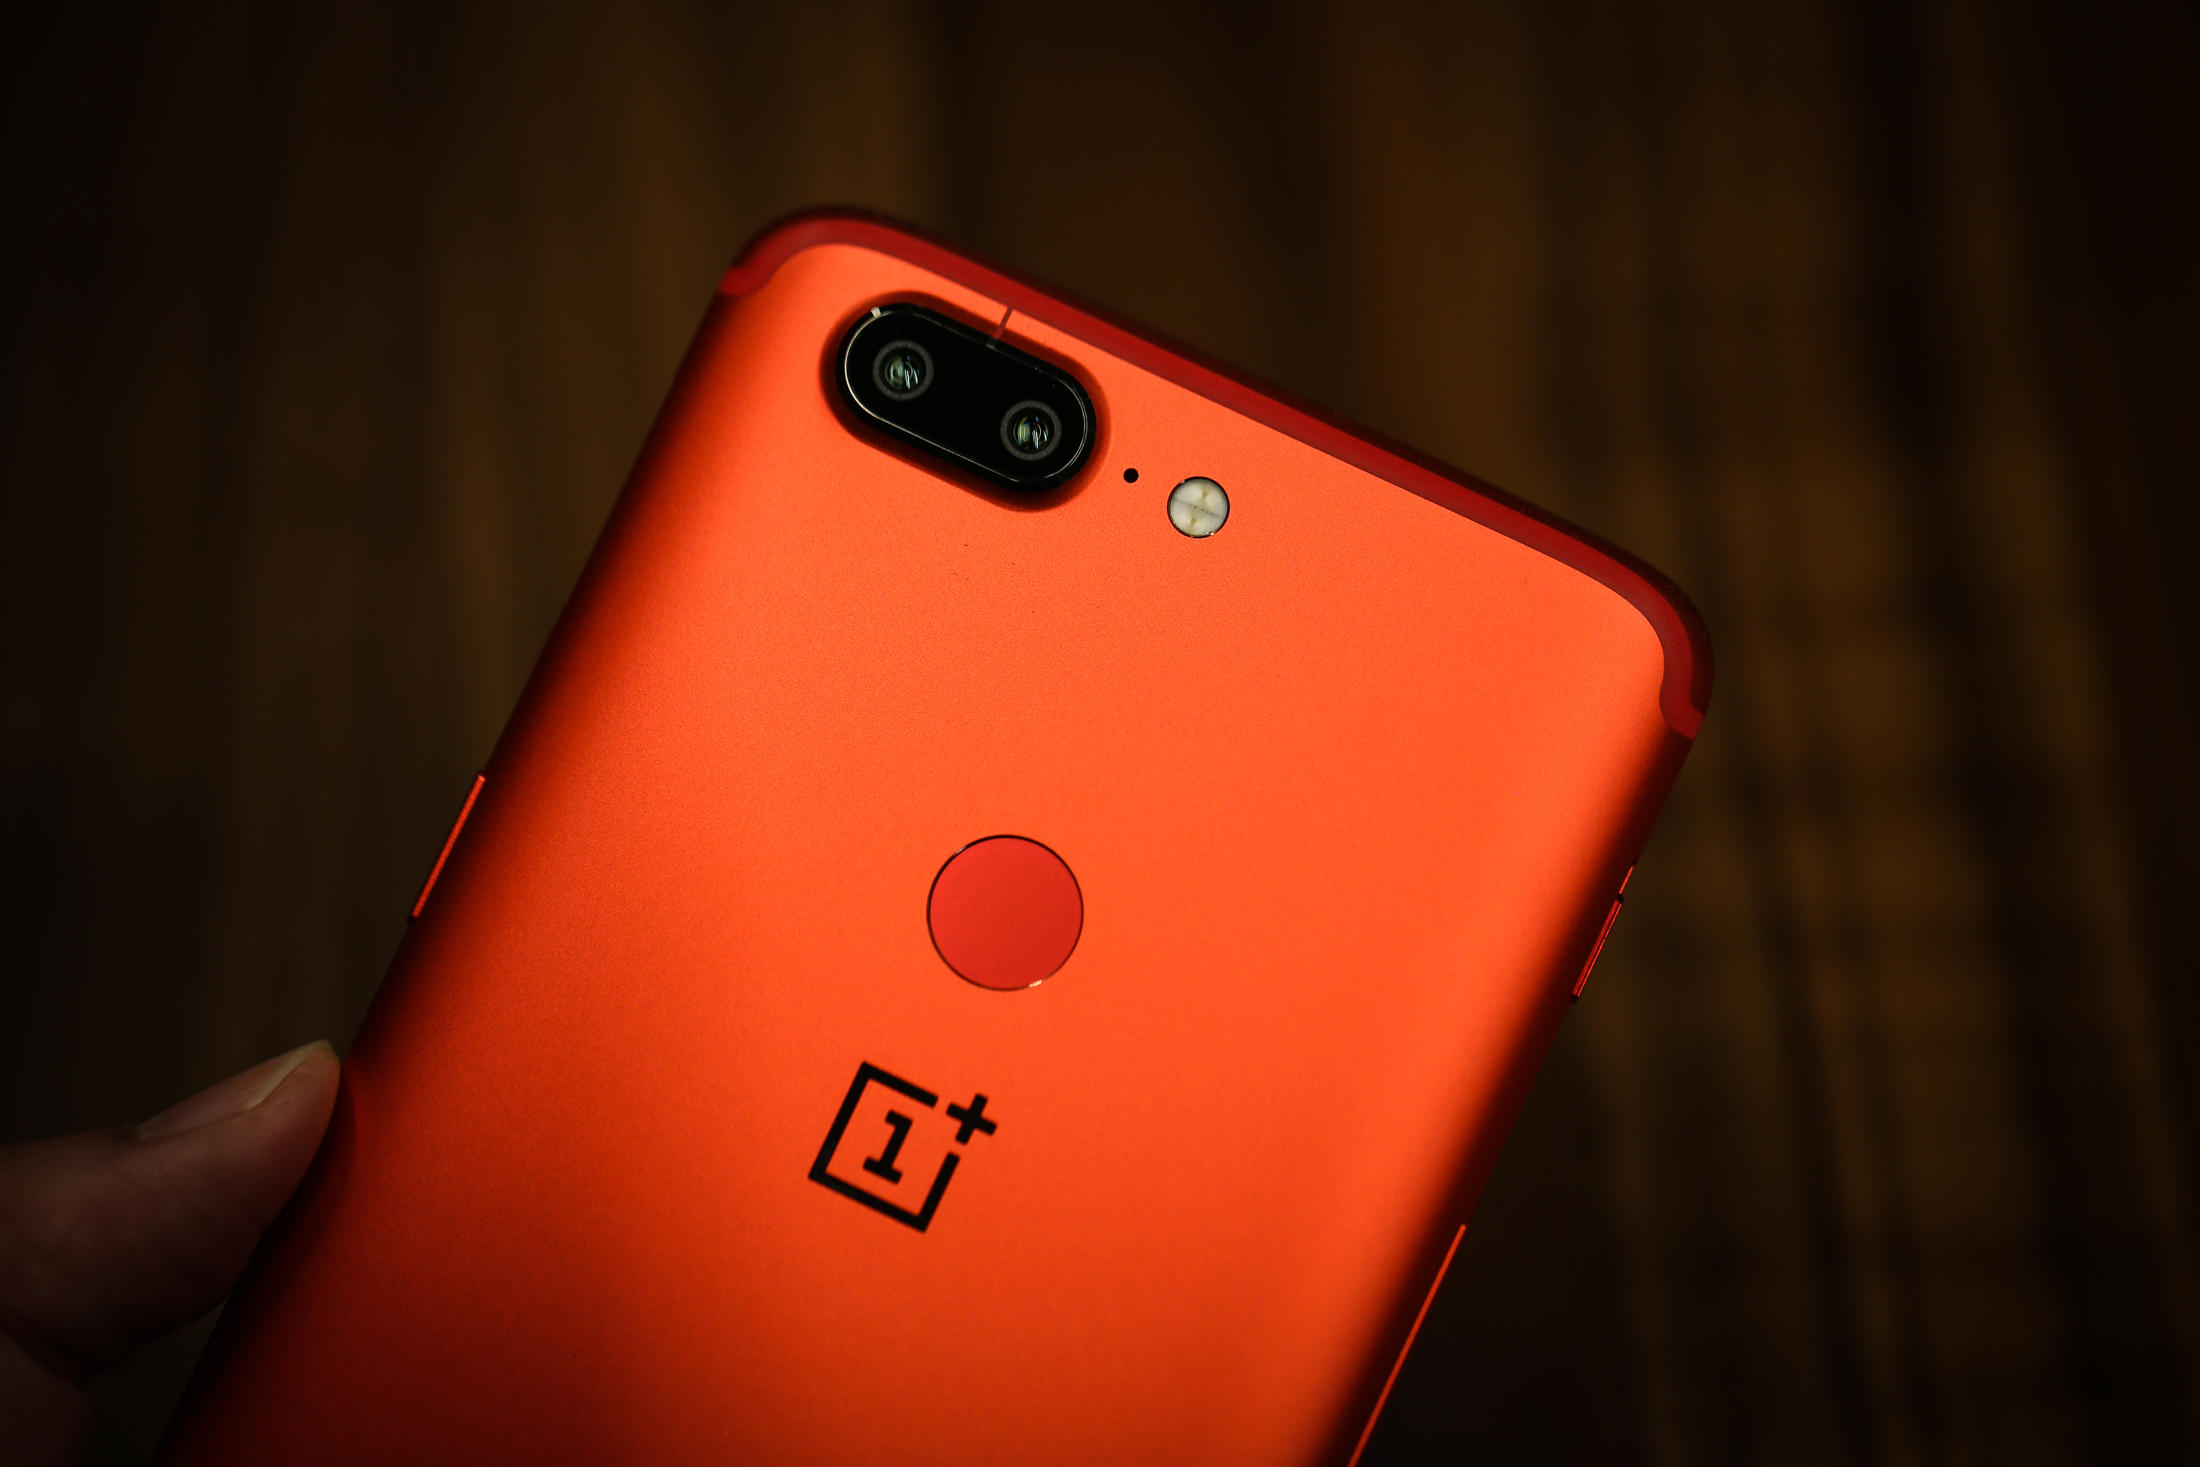 oneplus-5t-red-3340